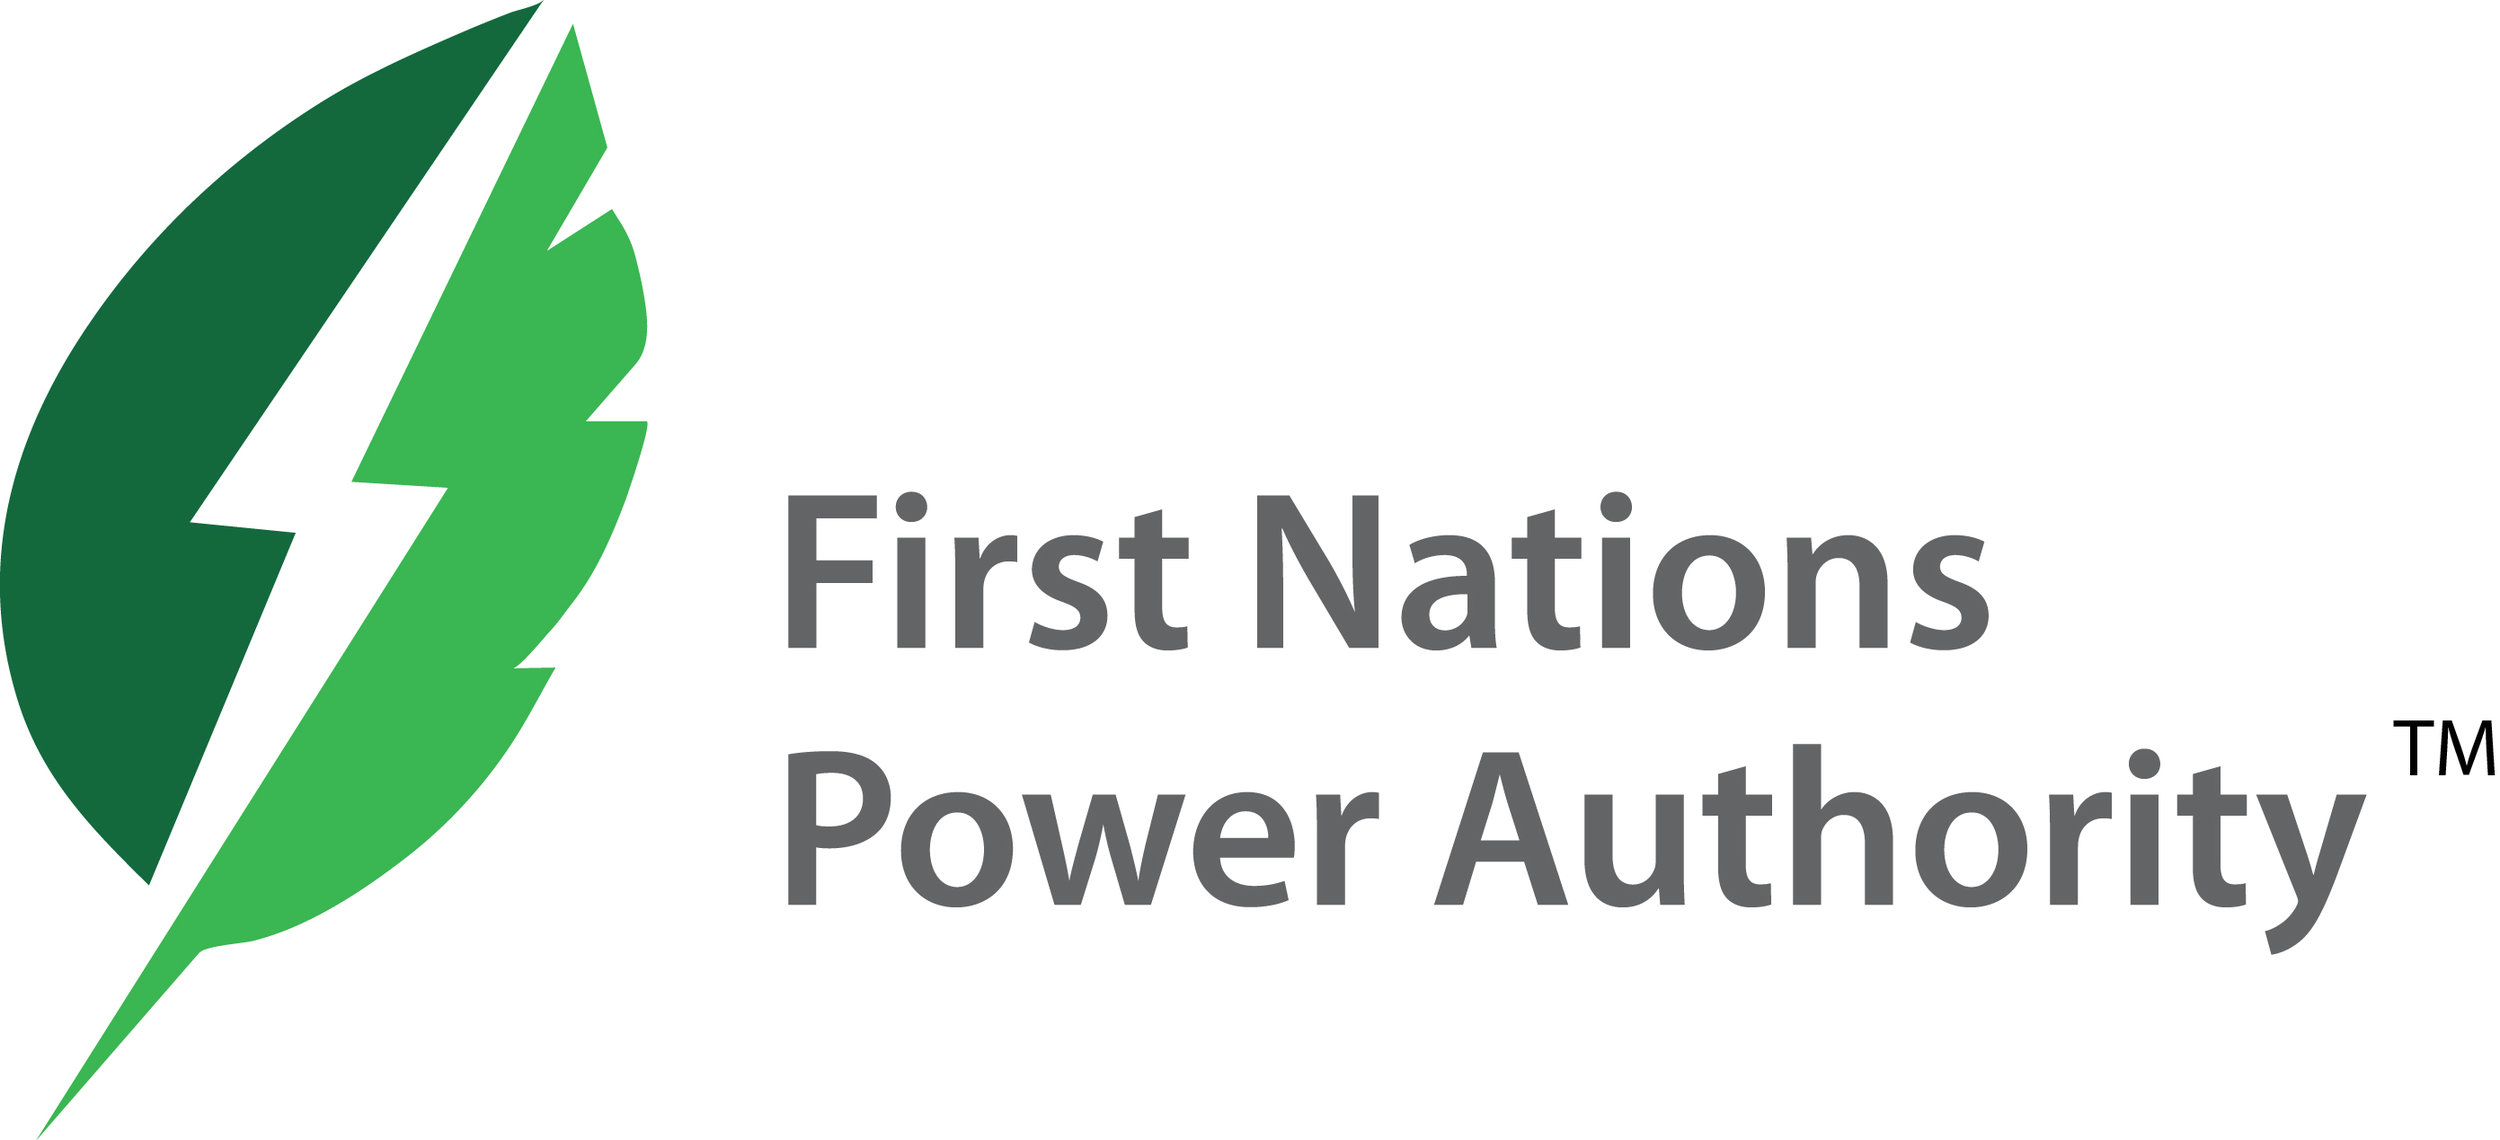 FirstNationsPowerAuthority.logo.jpg